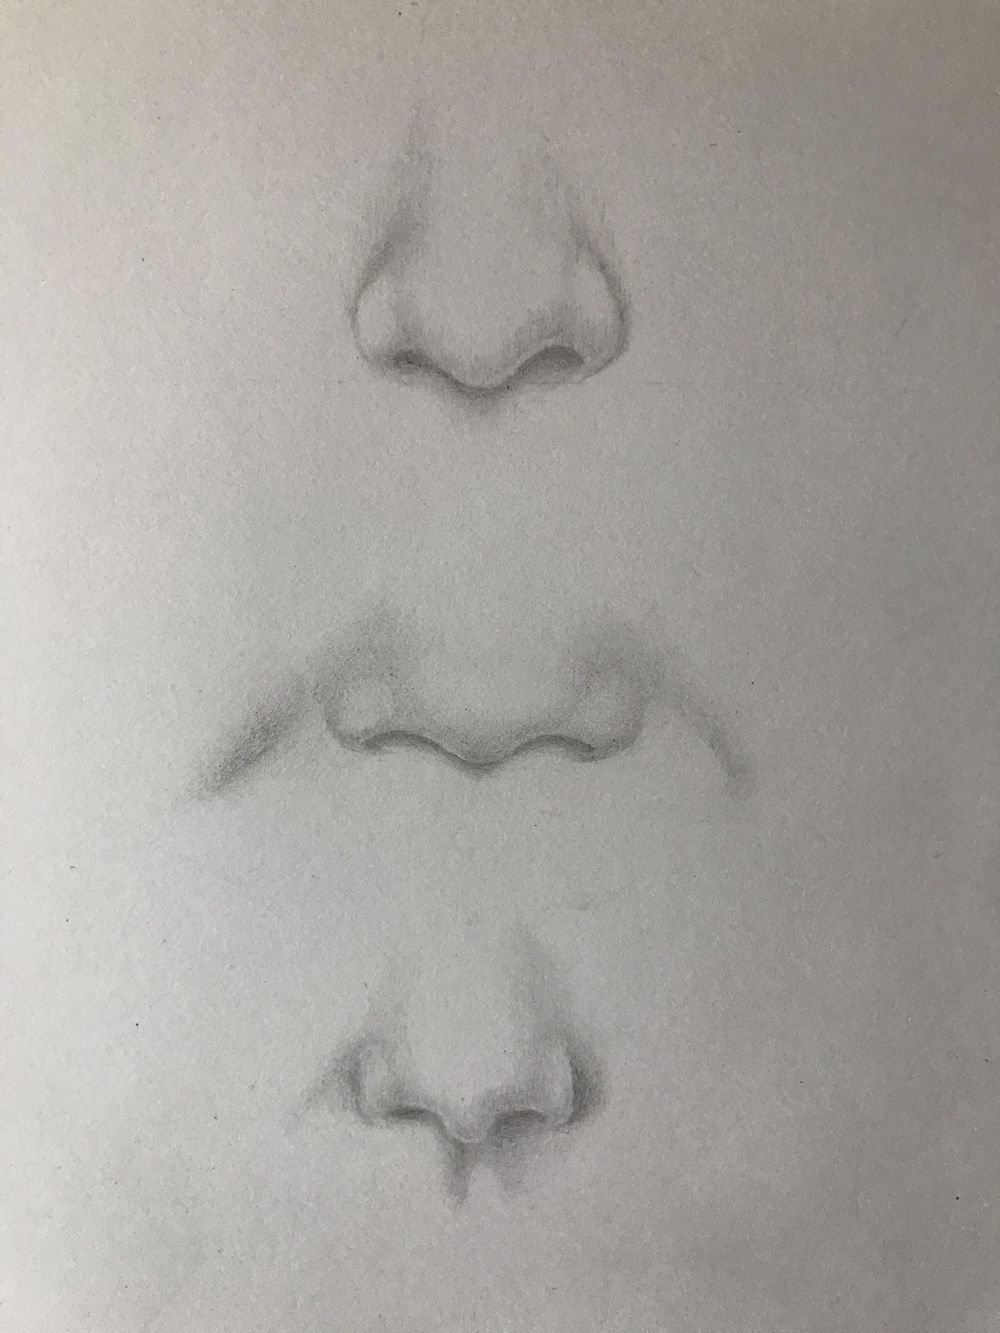 eyes, noses and lips - image 1 - student project